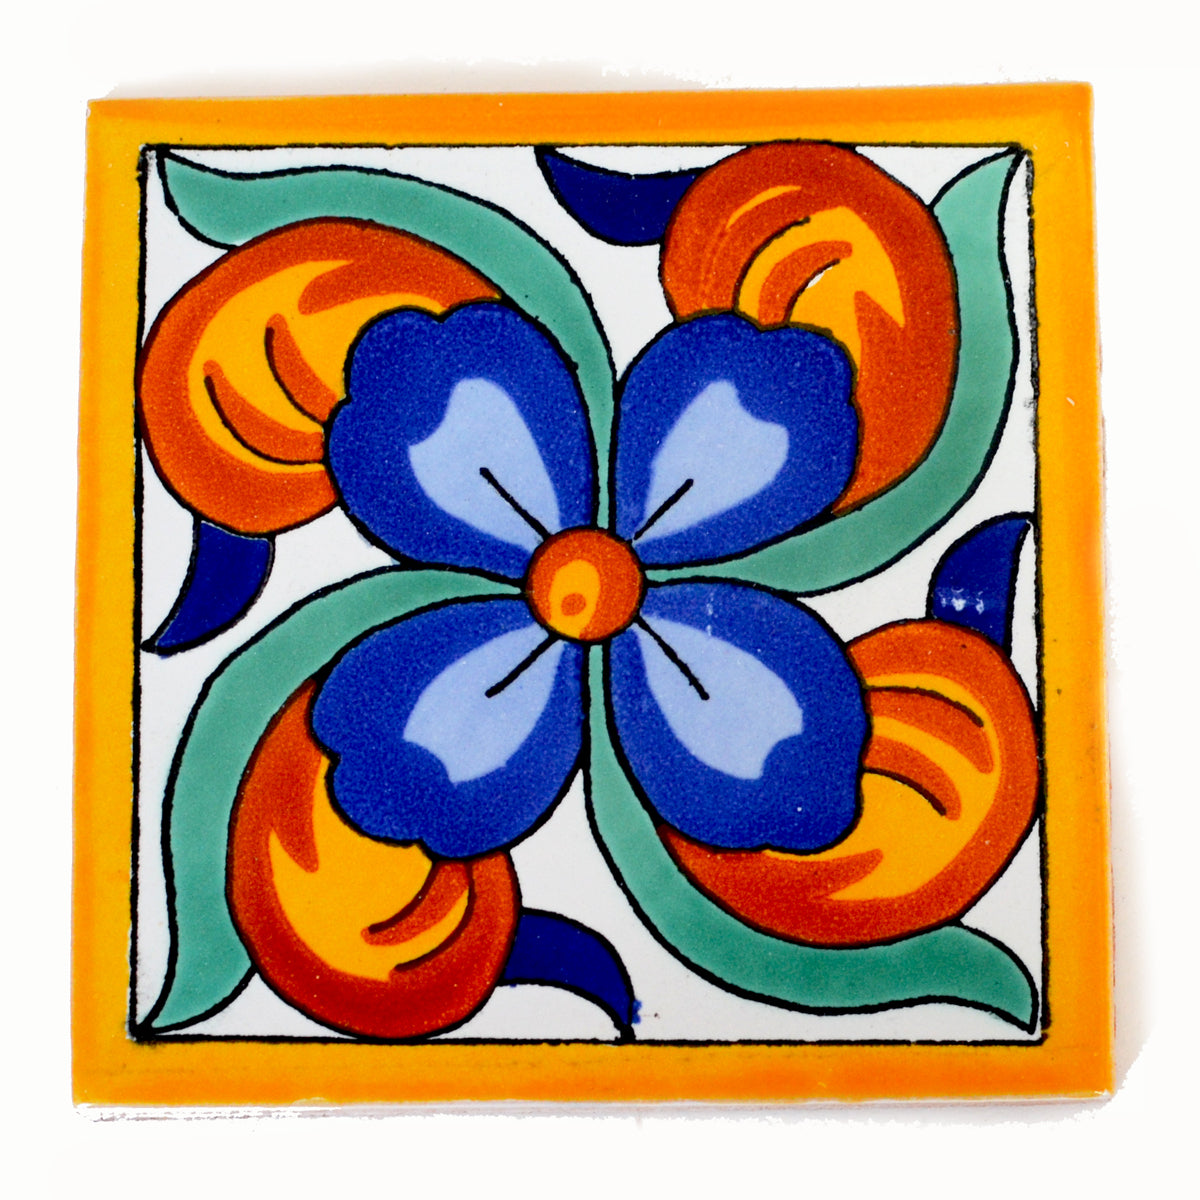 Outstanding Ceramic Tiles 4 X 4 Gallery - Simple Design Home ...